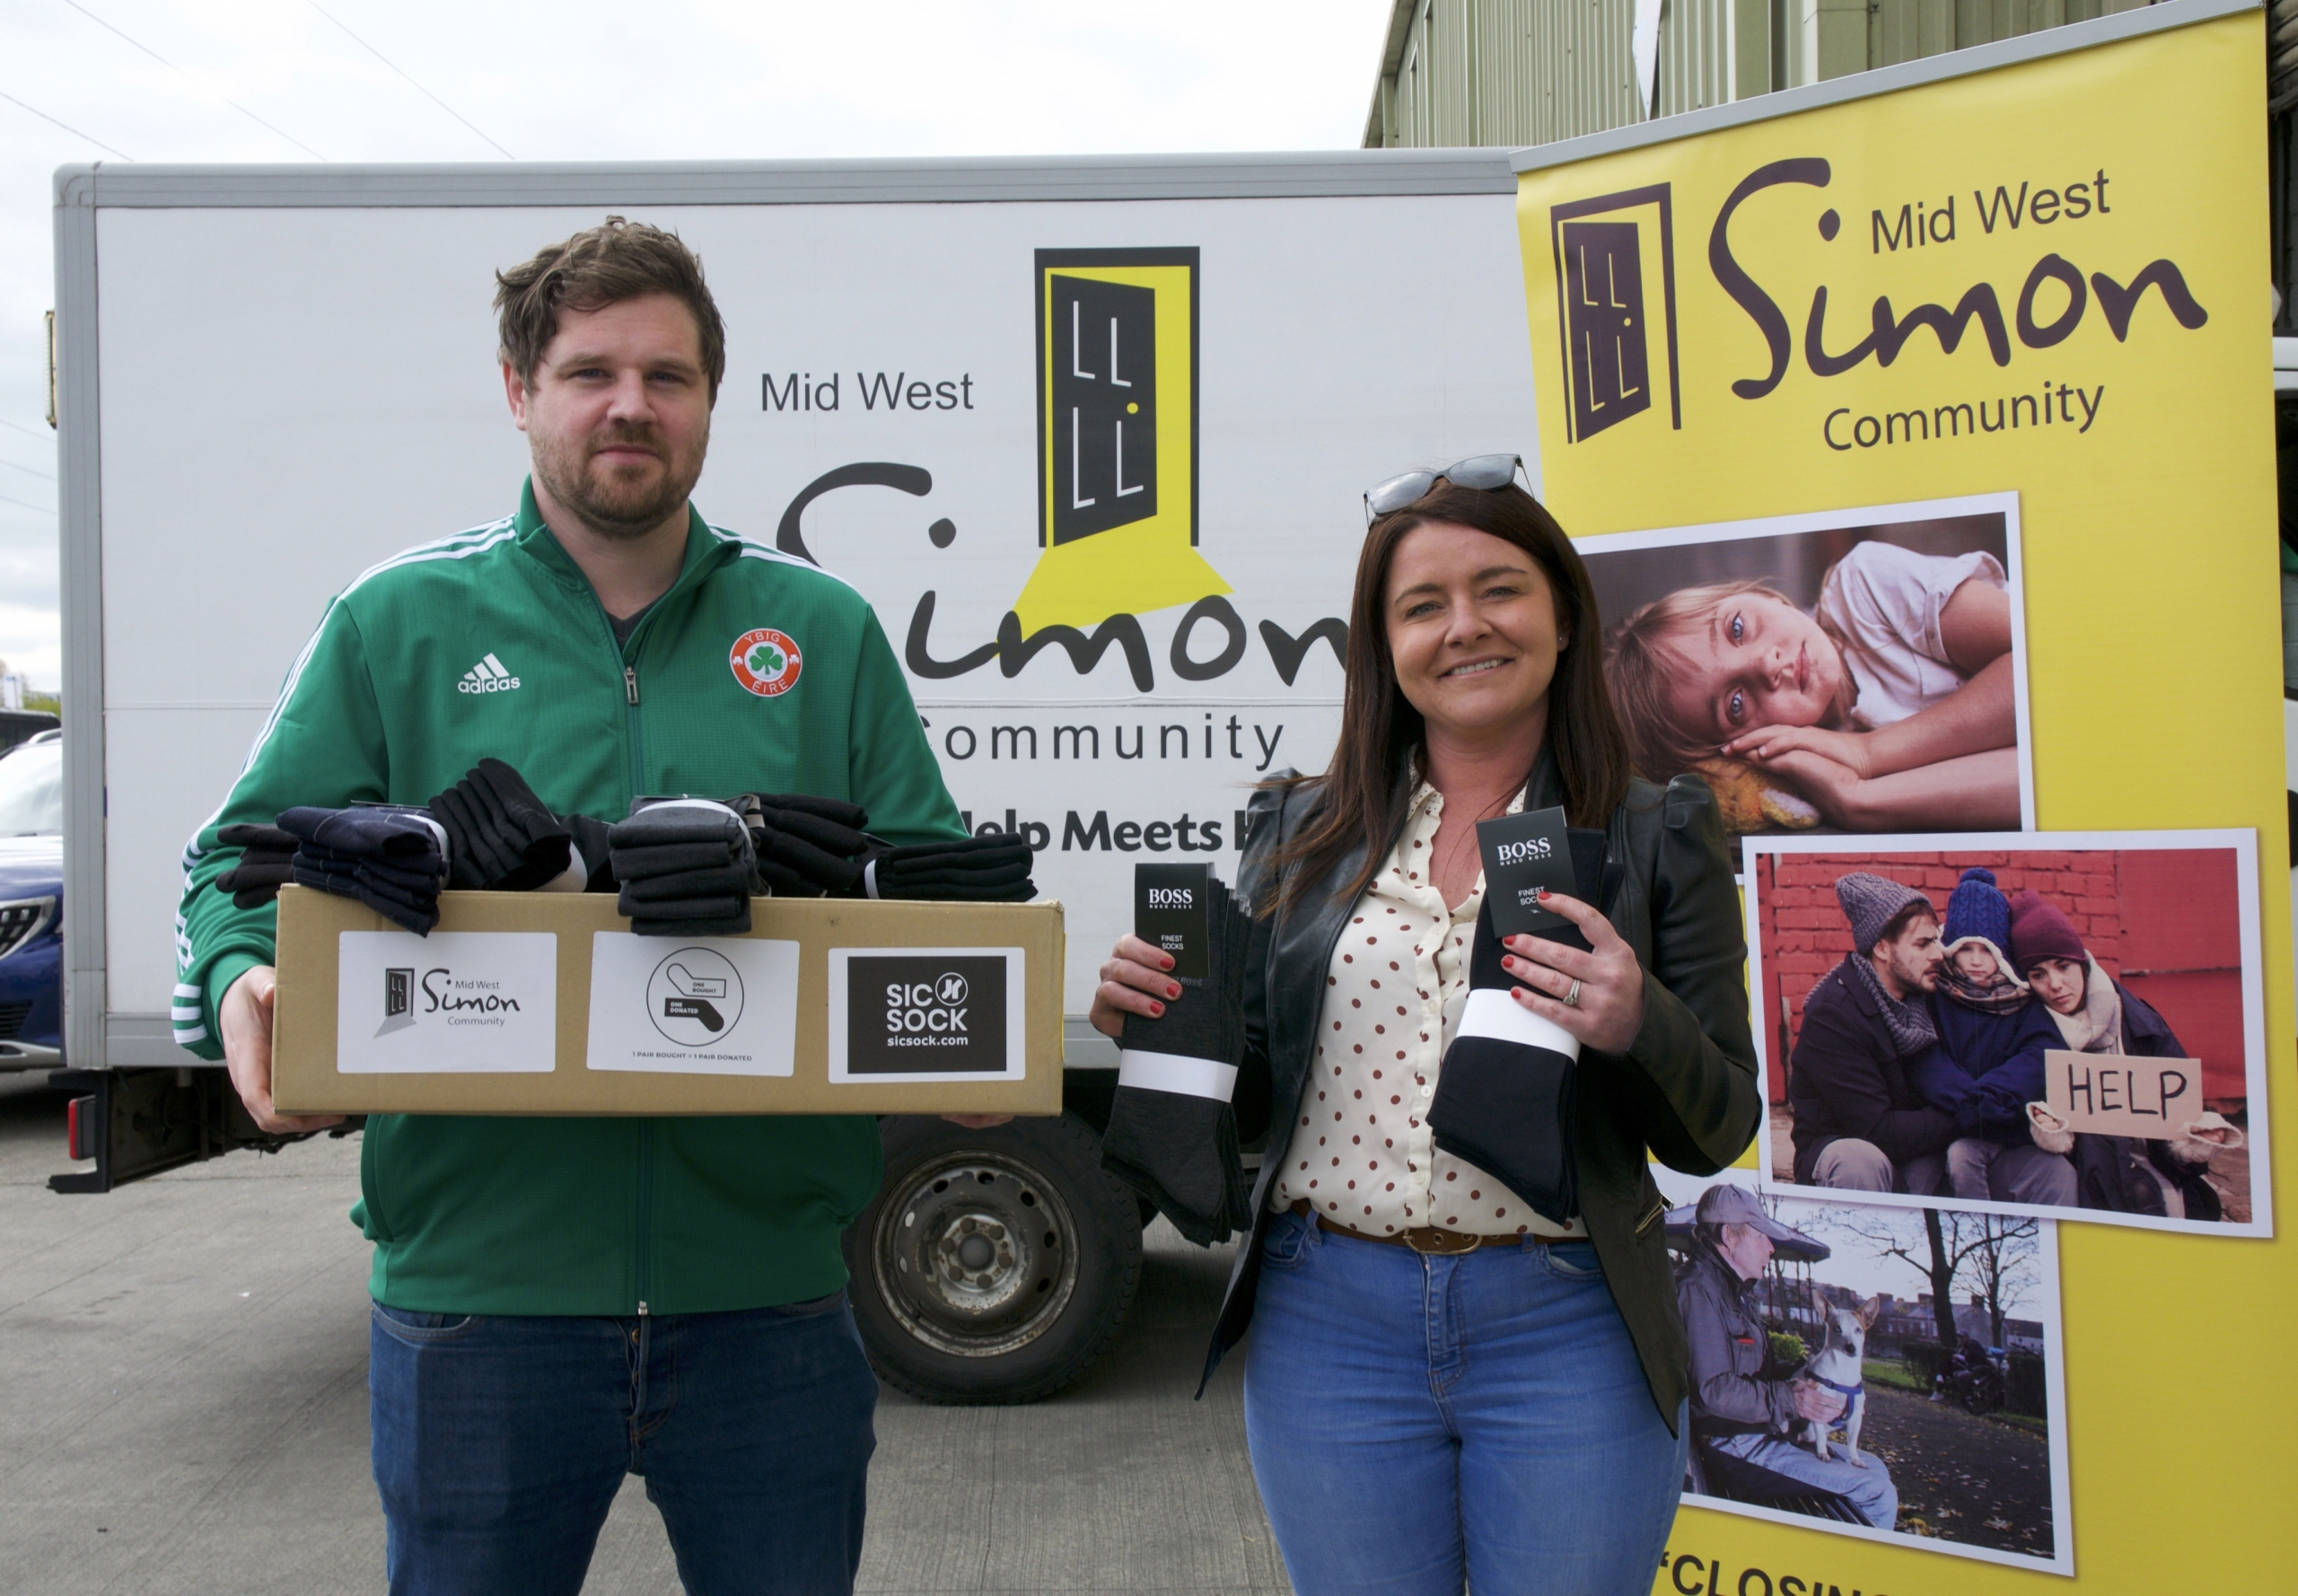 Sicsock.com Donates 270 Pairs of Socks to Mid West Simon Community for the Homeless